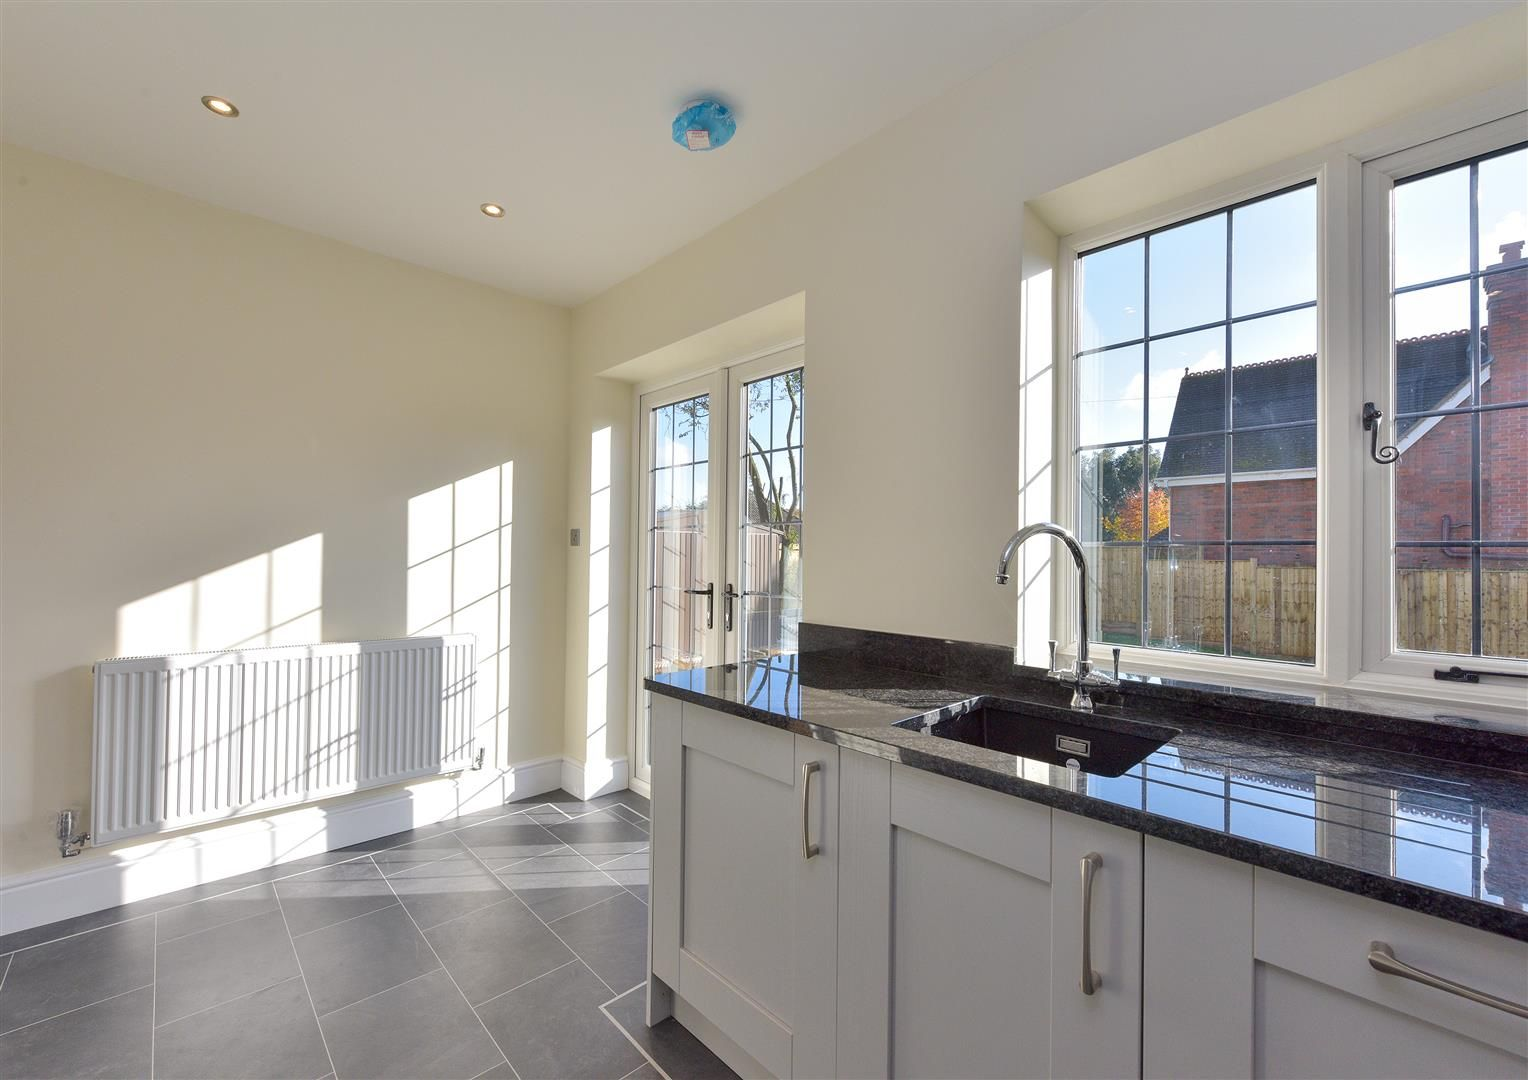 4 bed town-house for sale in Pedmore 5